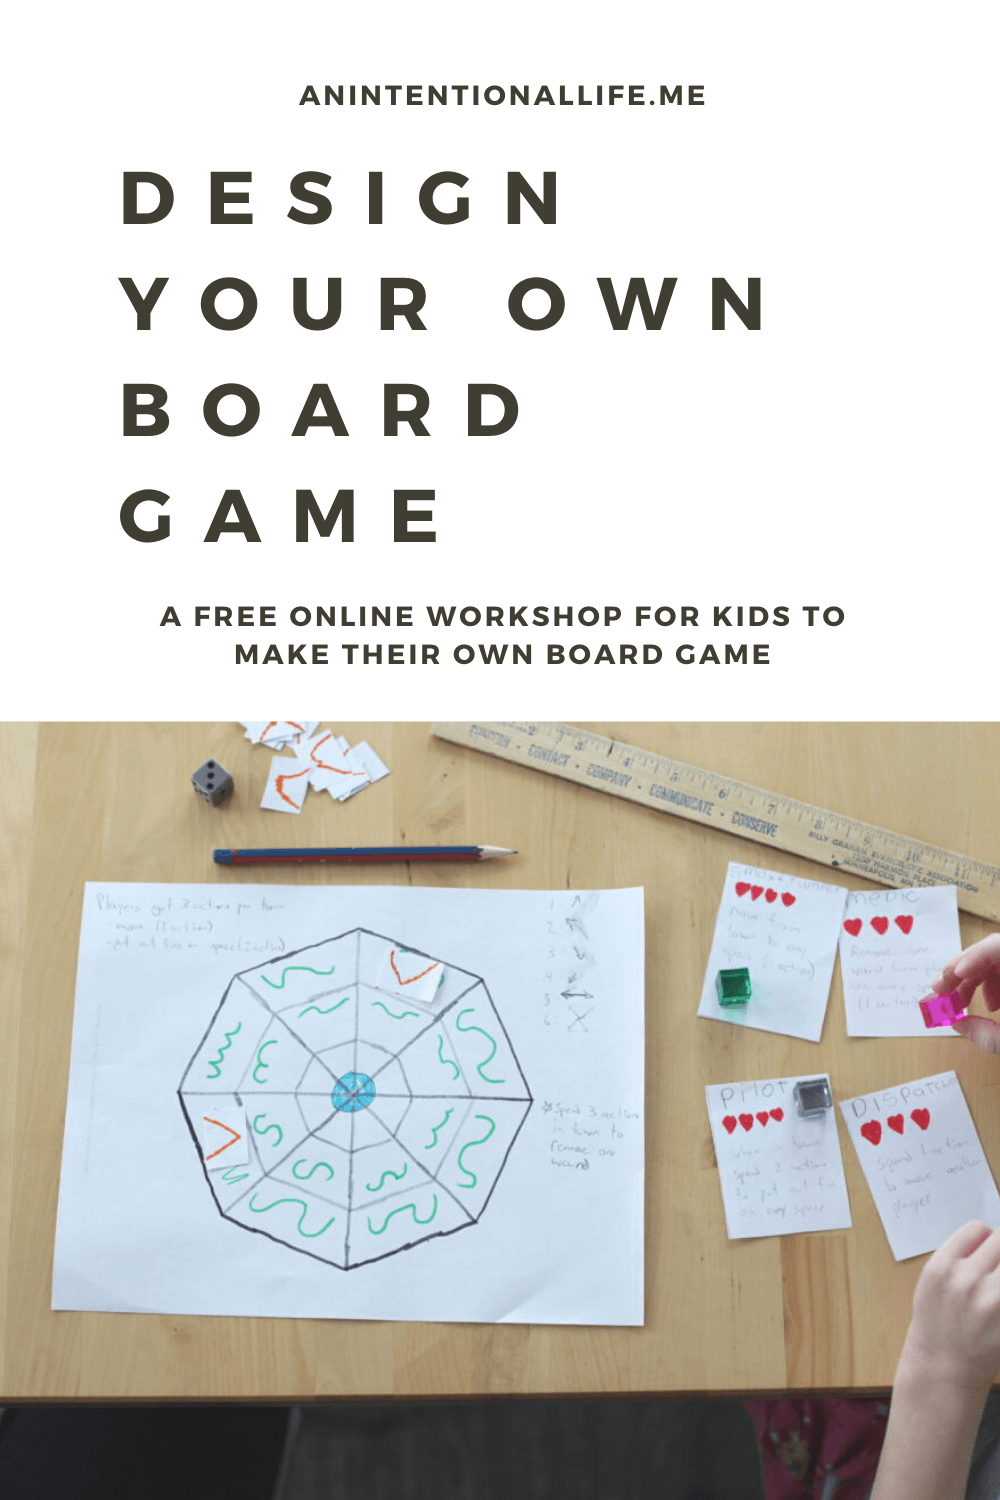 Design Your Own Board Game - a free online workshop for kids to design their own board game